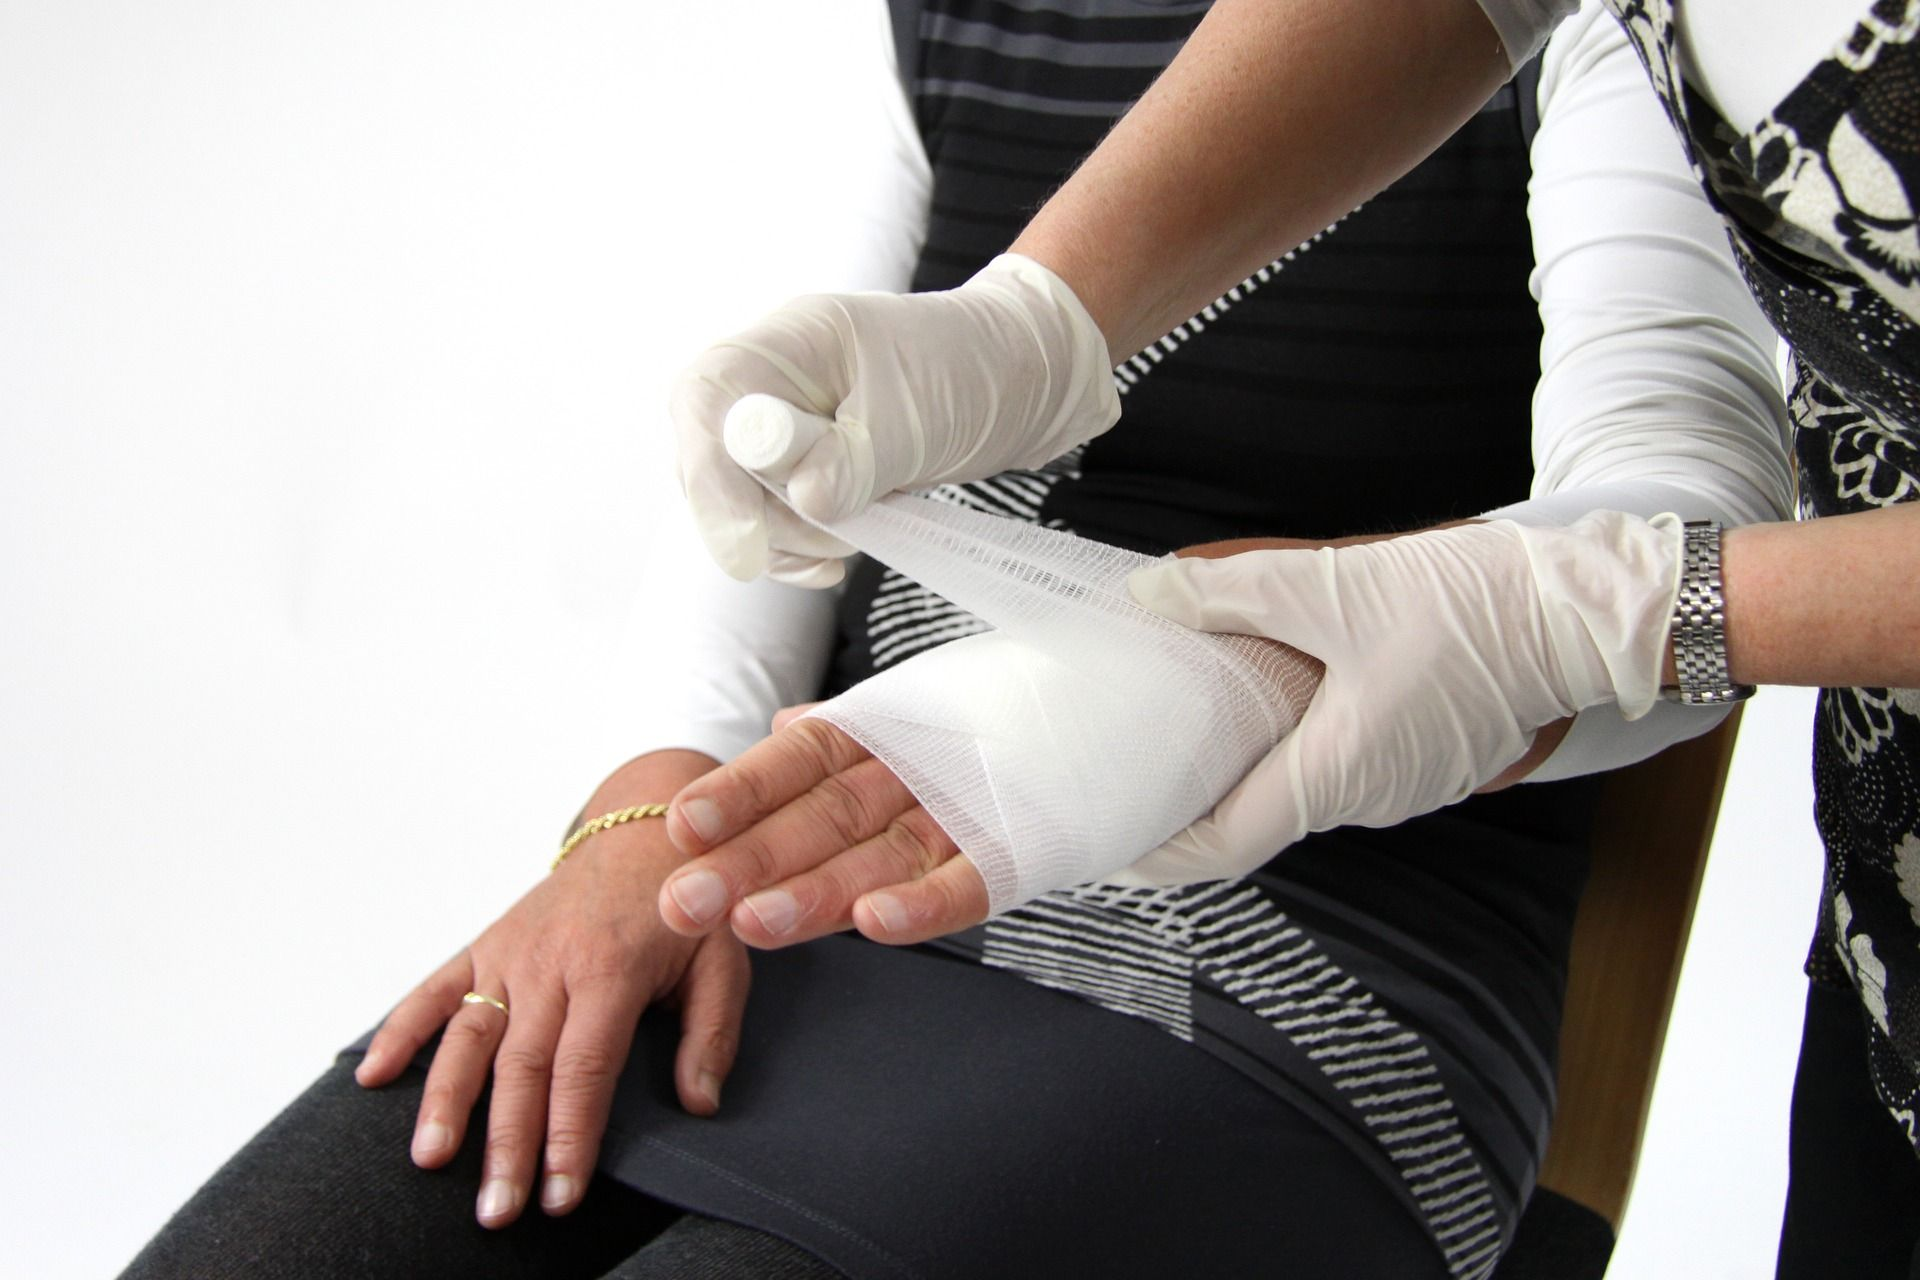 Common Hand and Wrist Injuries and How to Avoid Them